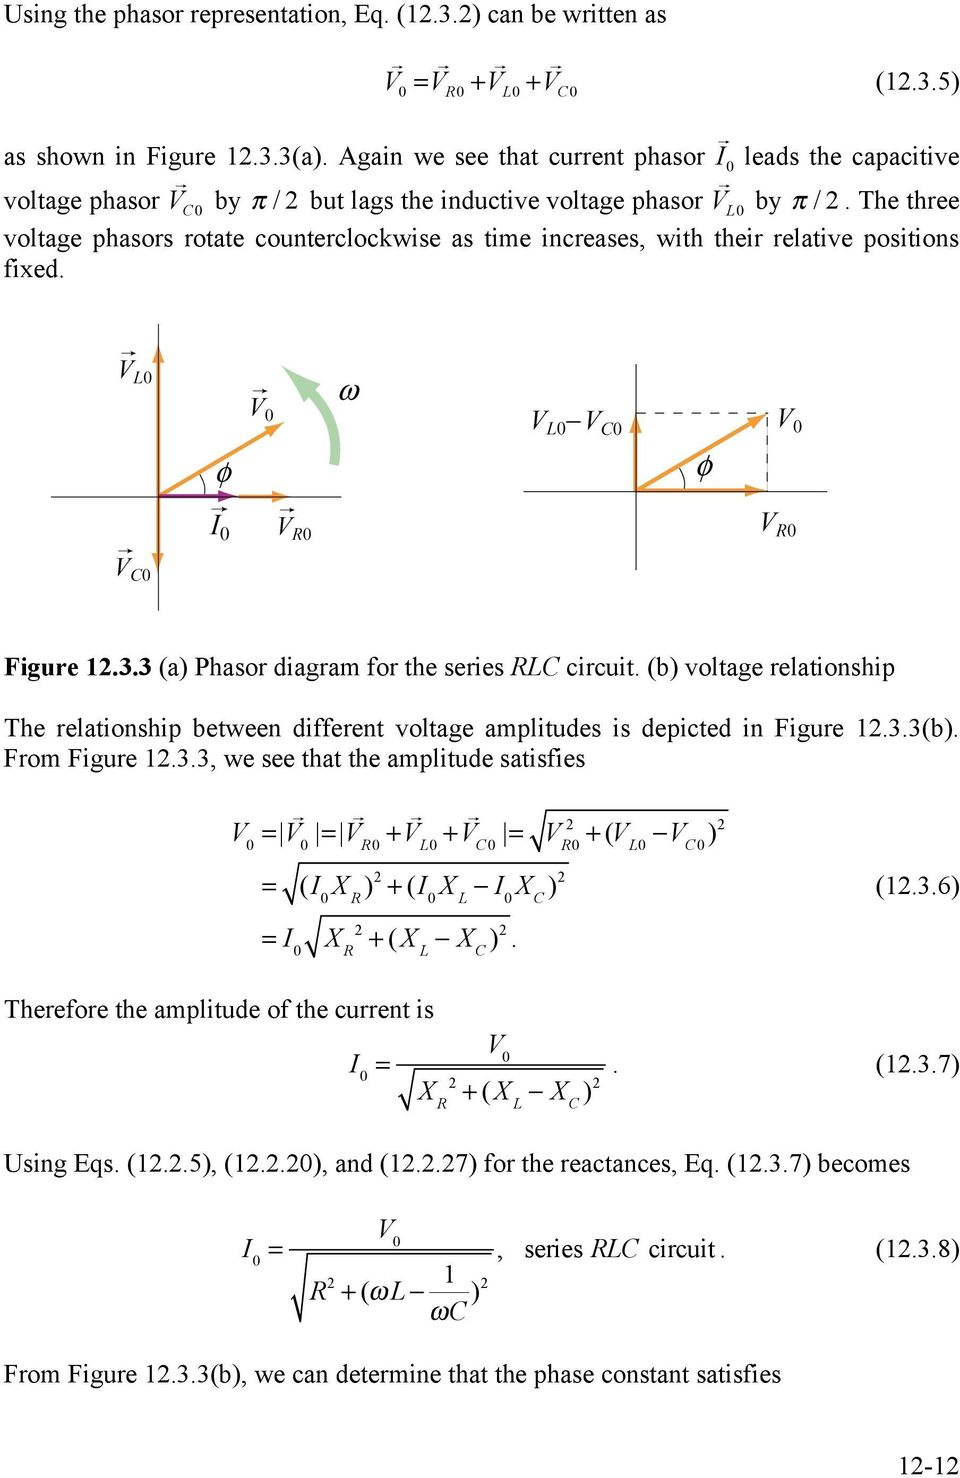 Chapter 12 Driven Rlc Circuits Pdf If We Increase The Inductance In An Rl Circuit What Happens To Three Voltage Phasors Rotate Counterclockwise As Time Increases With Their Relative Positions Fixed